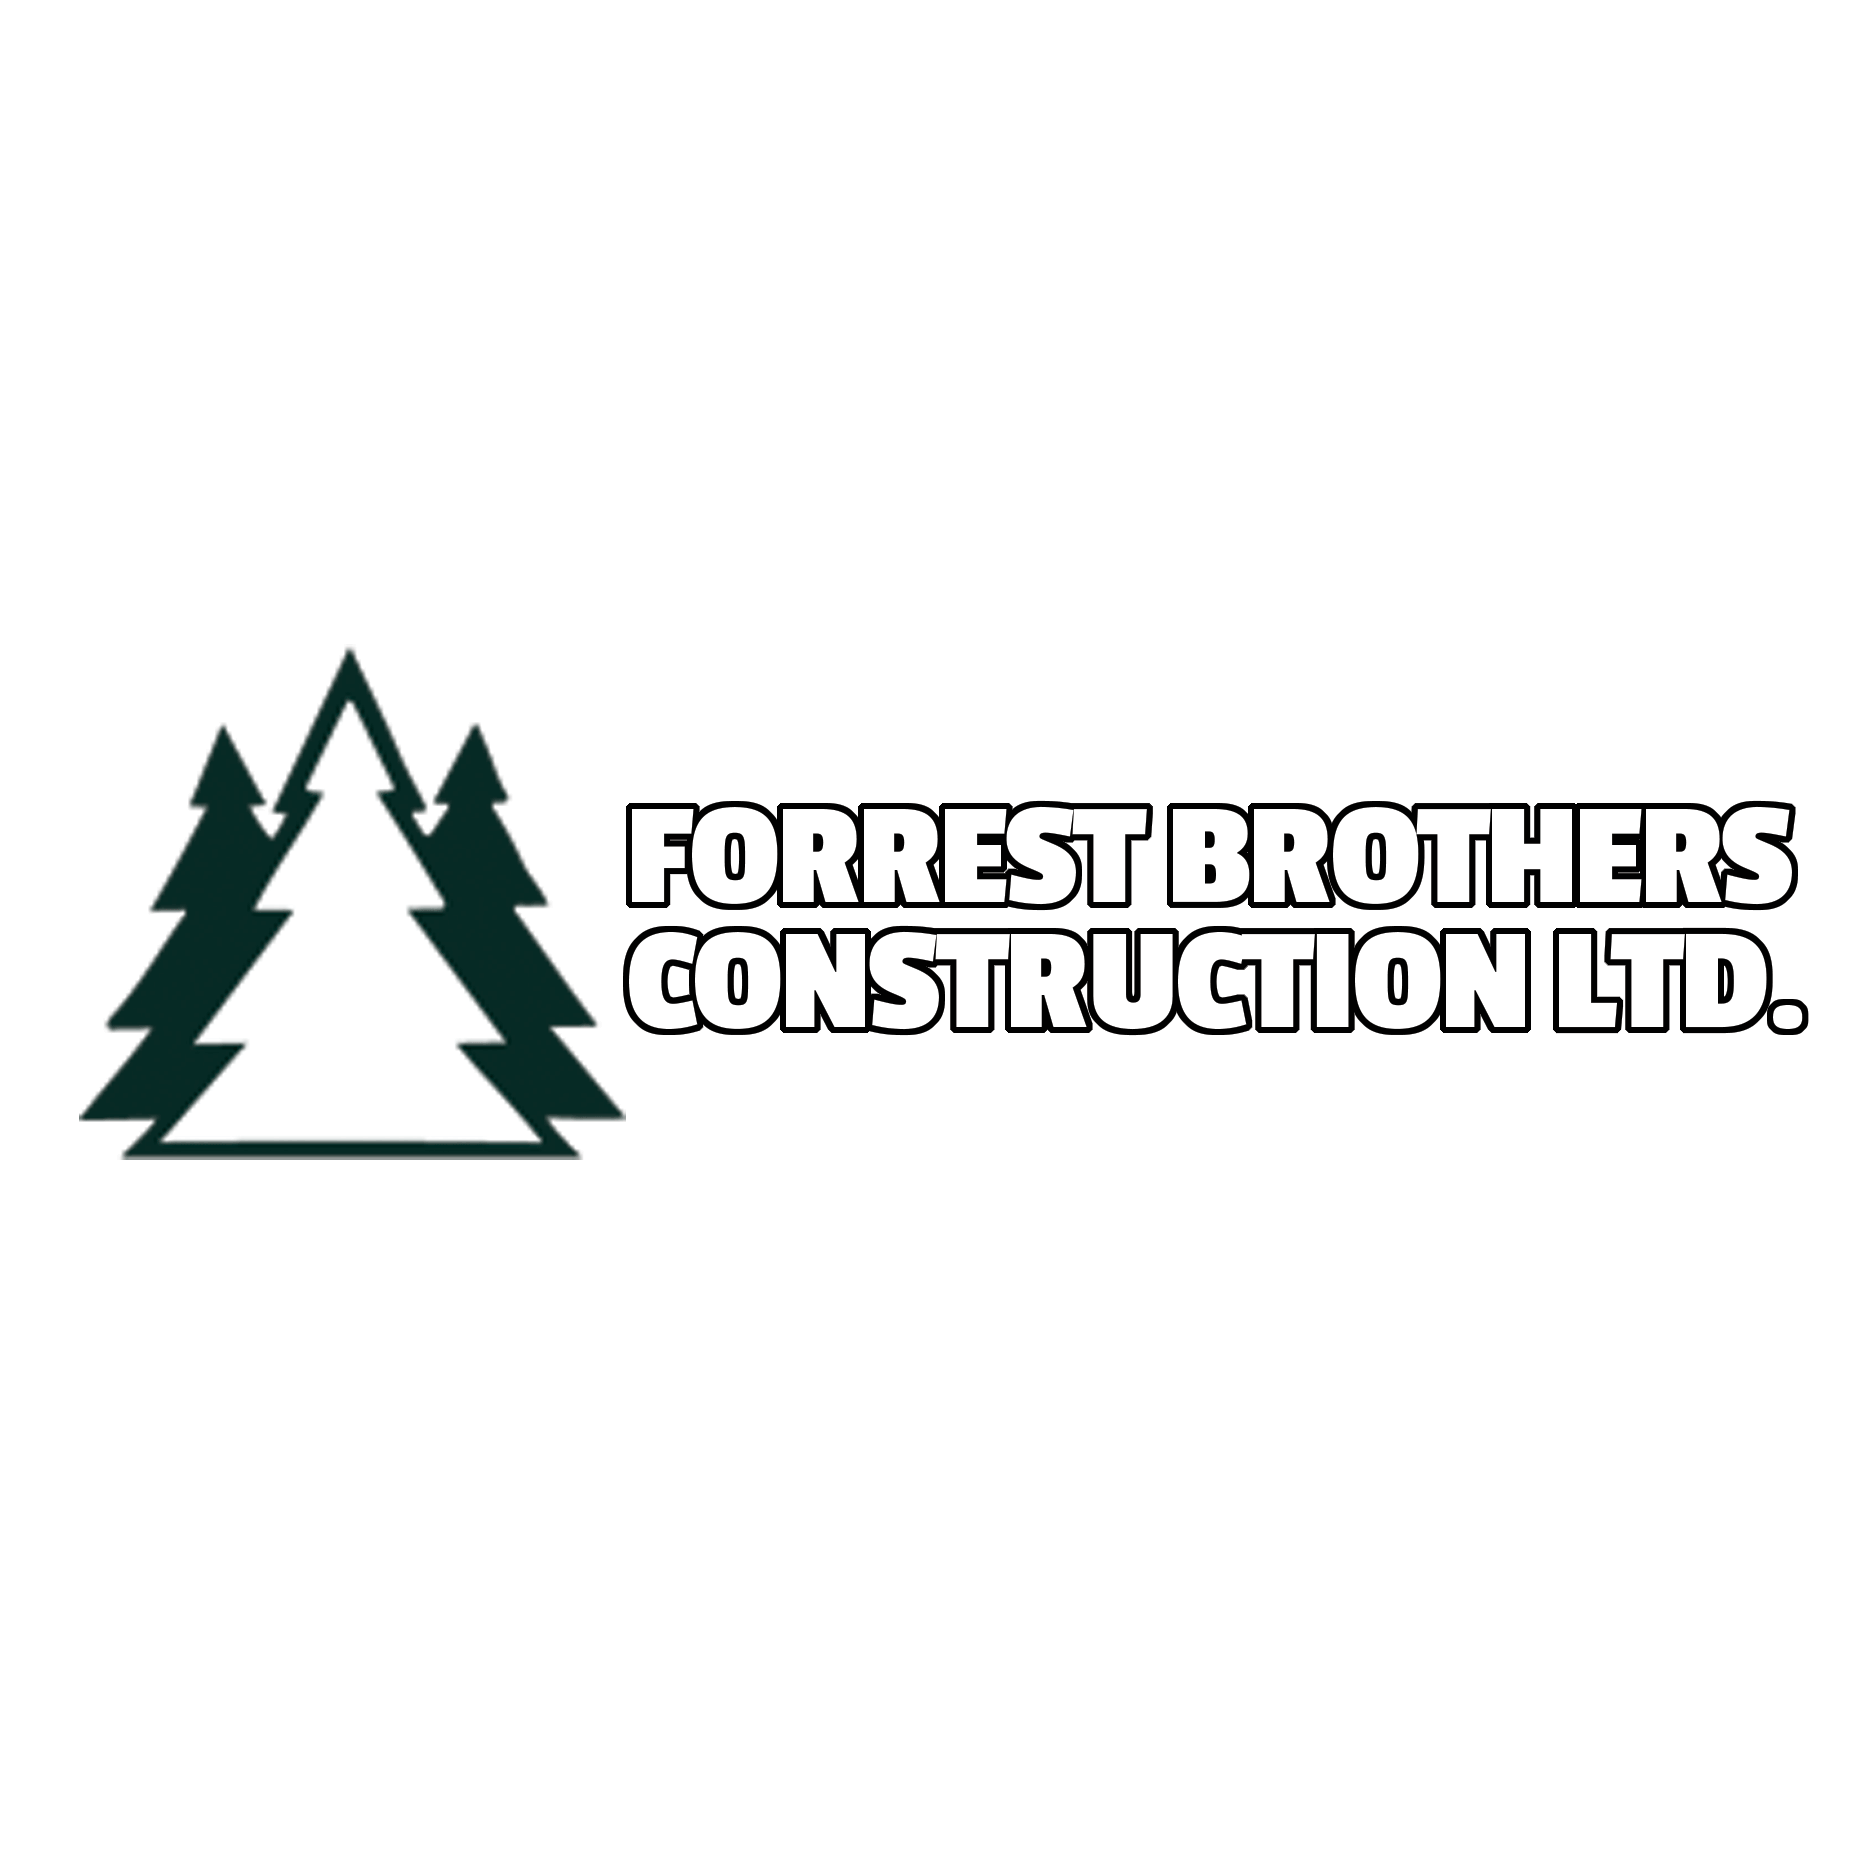 https://dartmouthpigdogs.ca/wp-content/uploads/2018/03/FORREST-BROTHERS.png